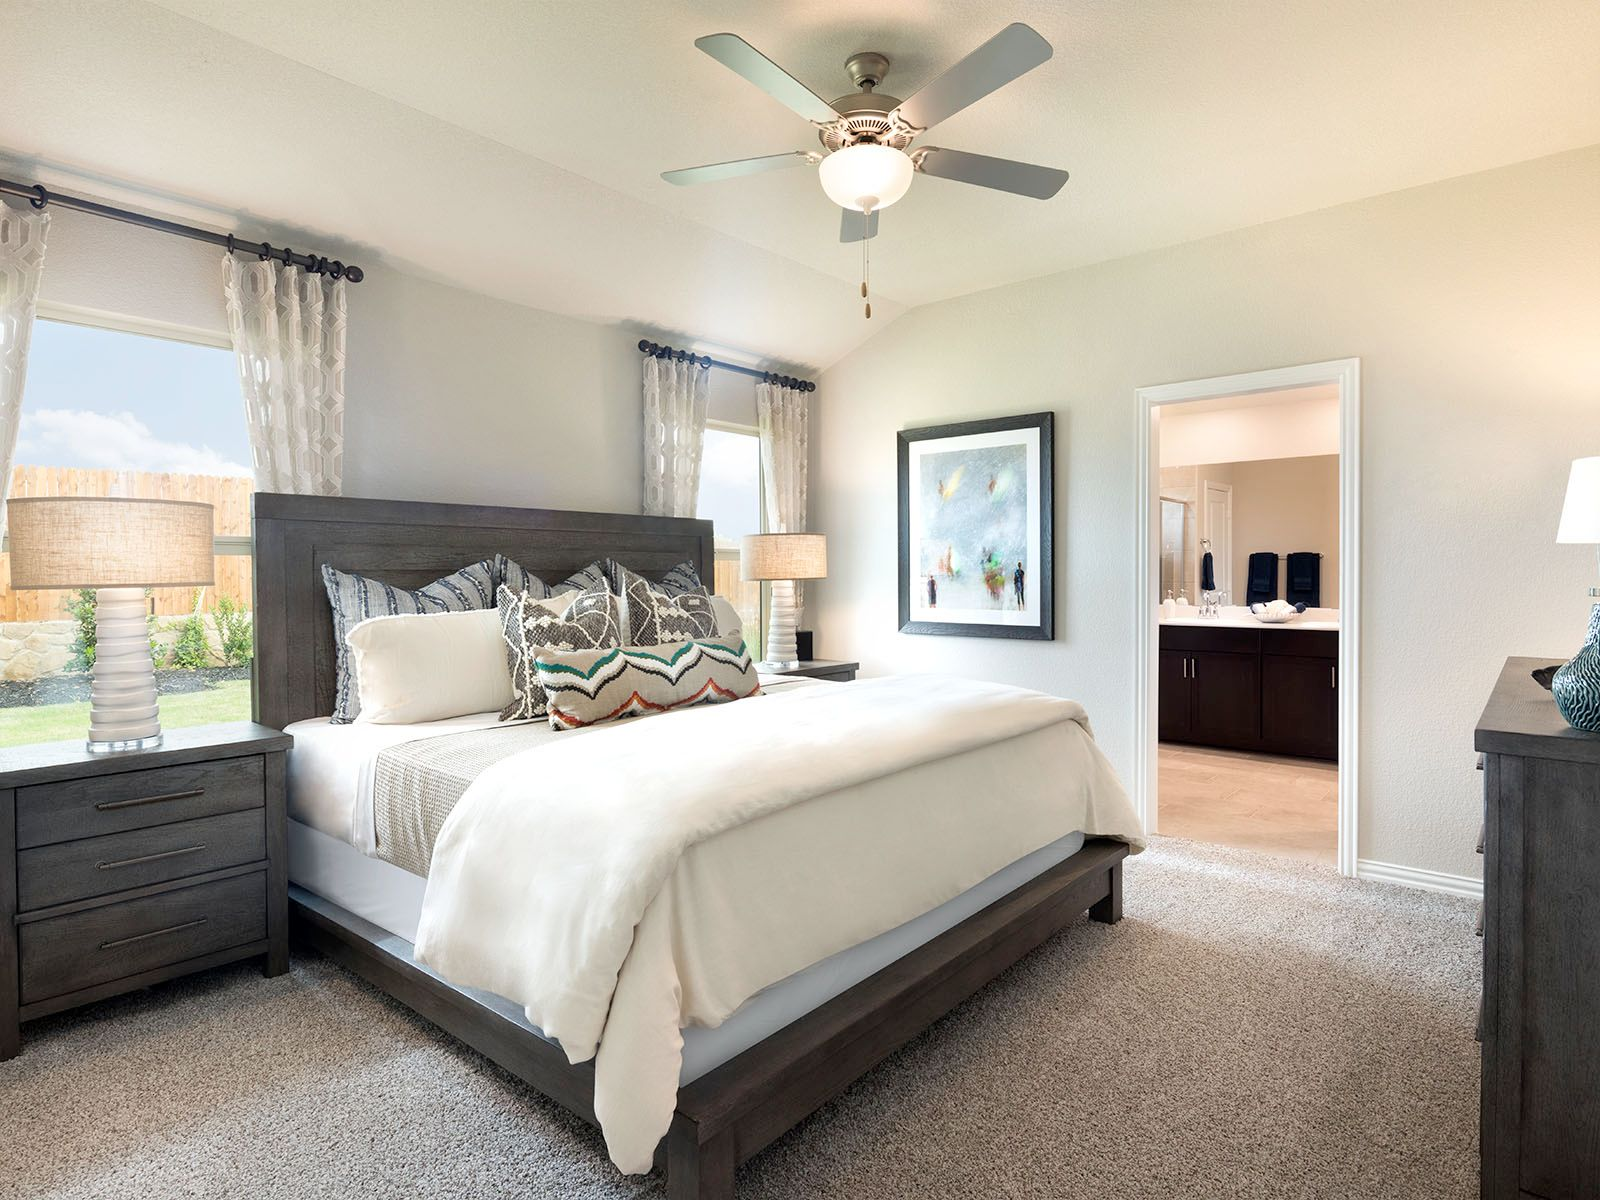 Bedroom featured in The Oleander By Meritage Homes in Dallas, TX